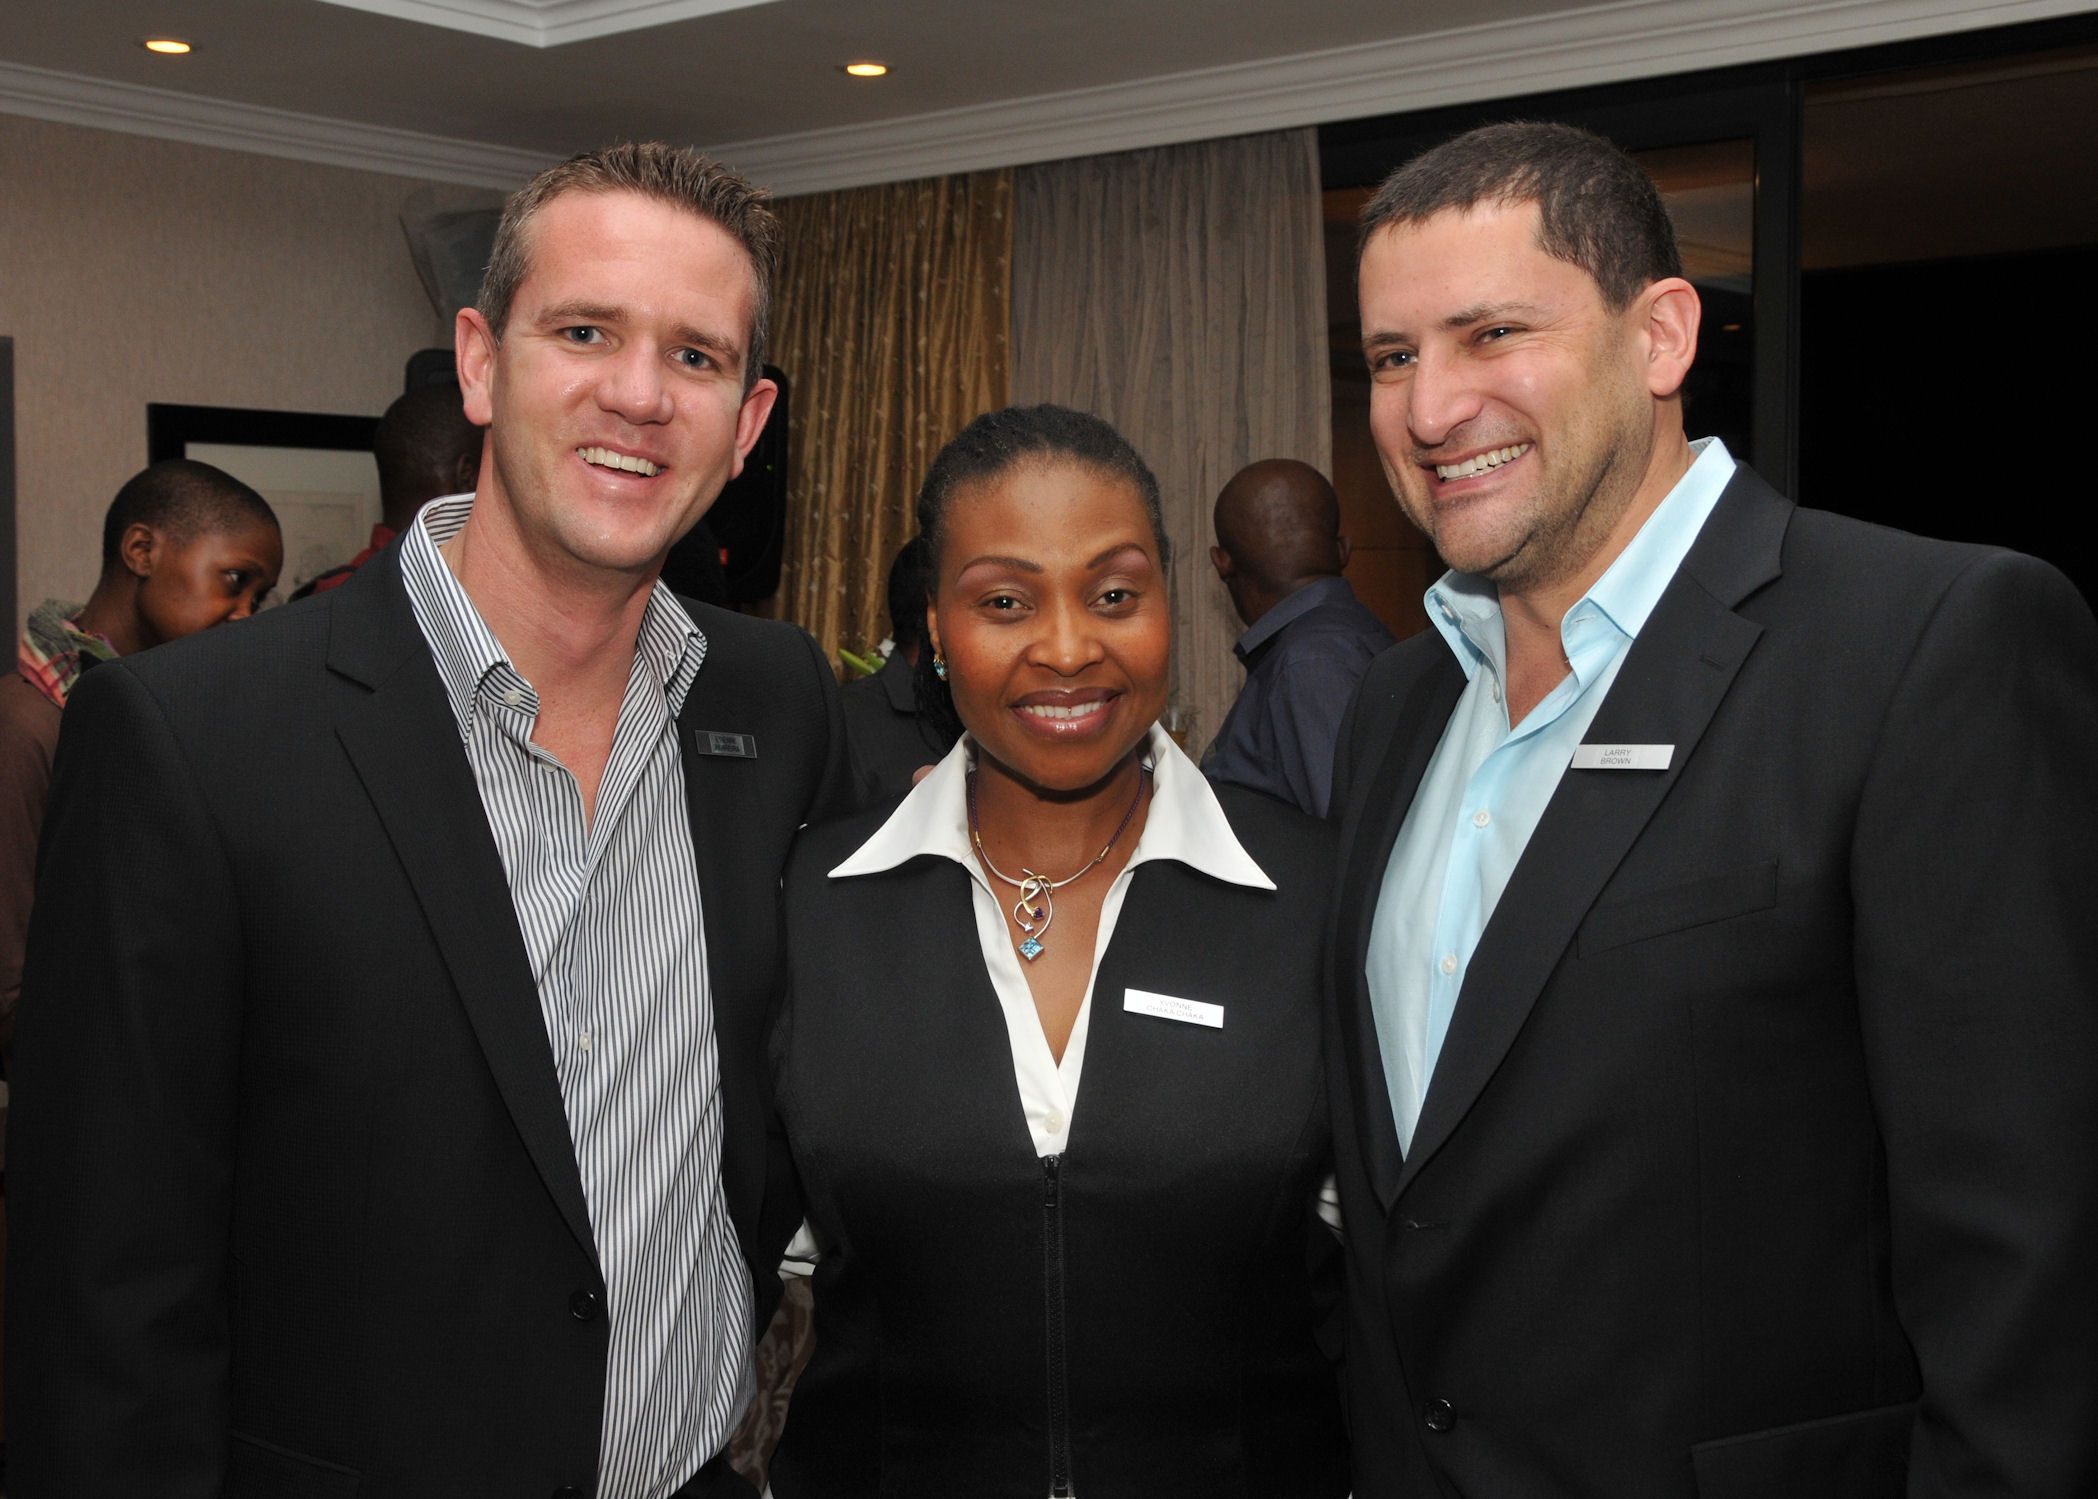 Yvonne Chaka Chaka with Larry Brown and Etienne Ferreira at the launch of the Protea Collection.